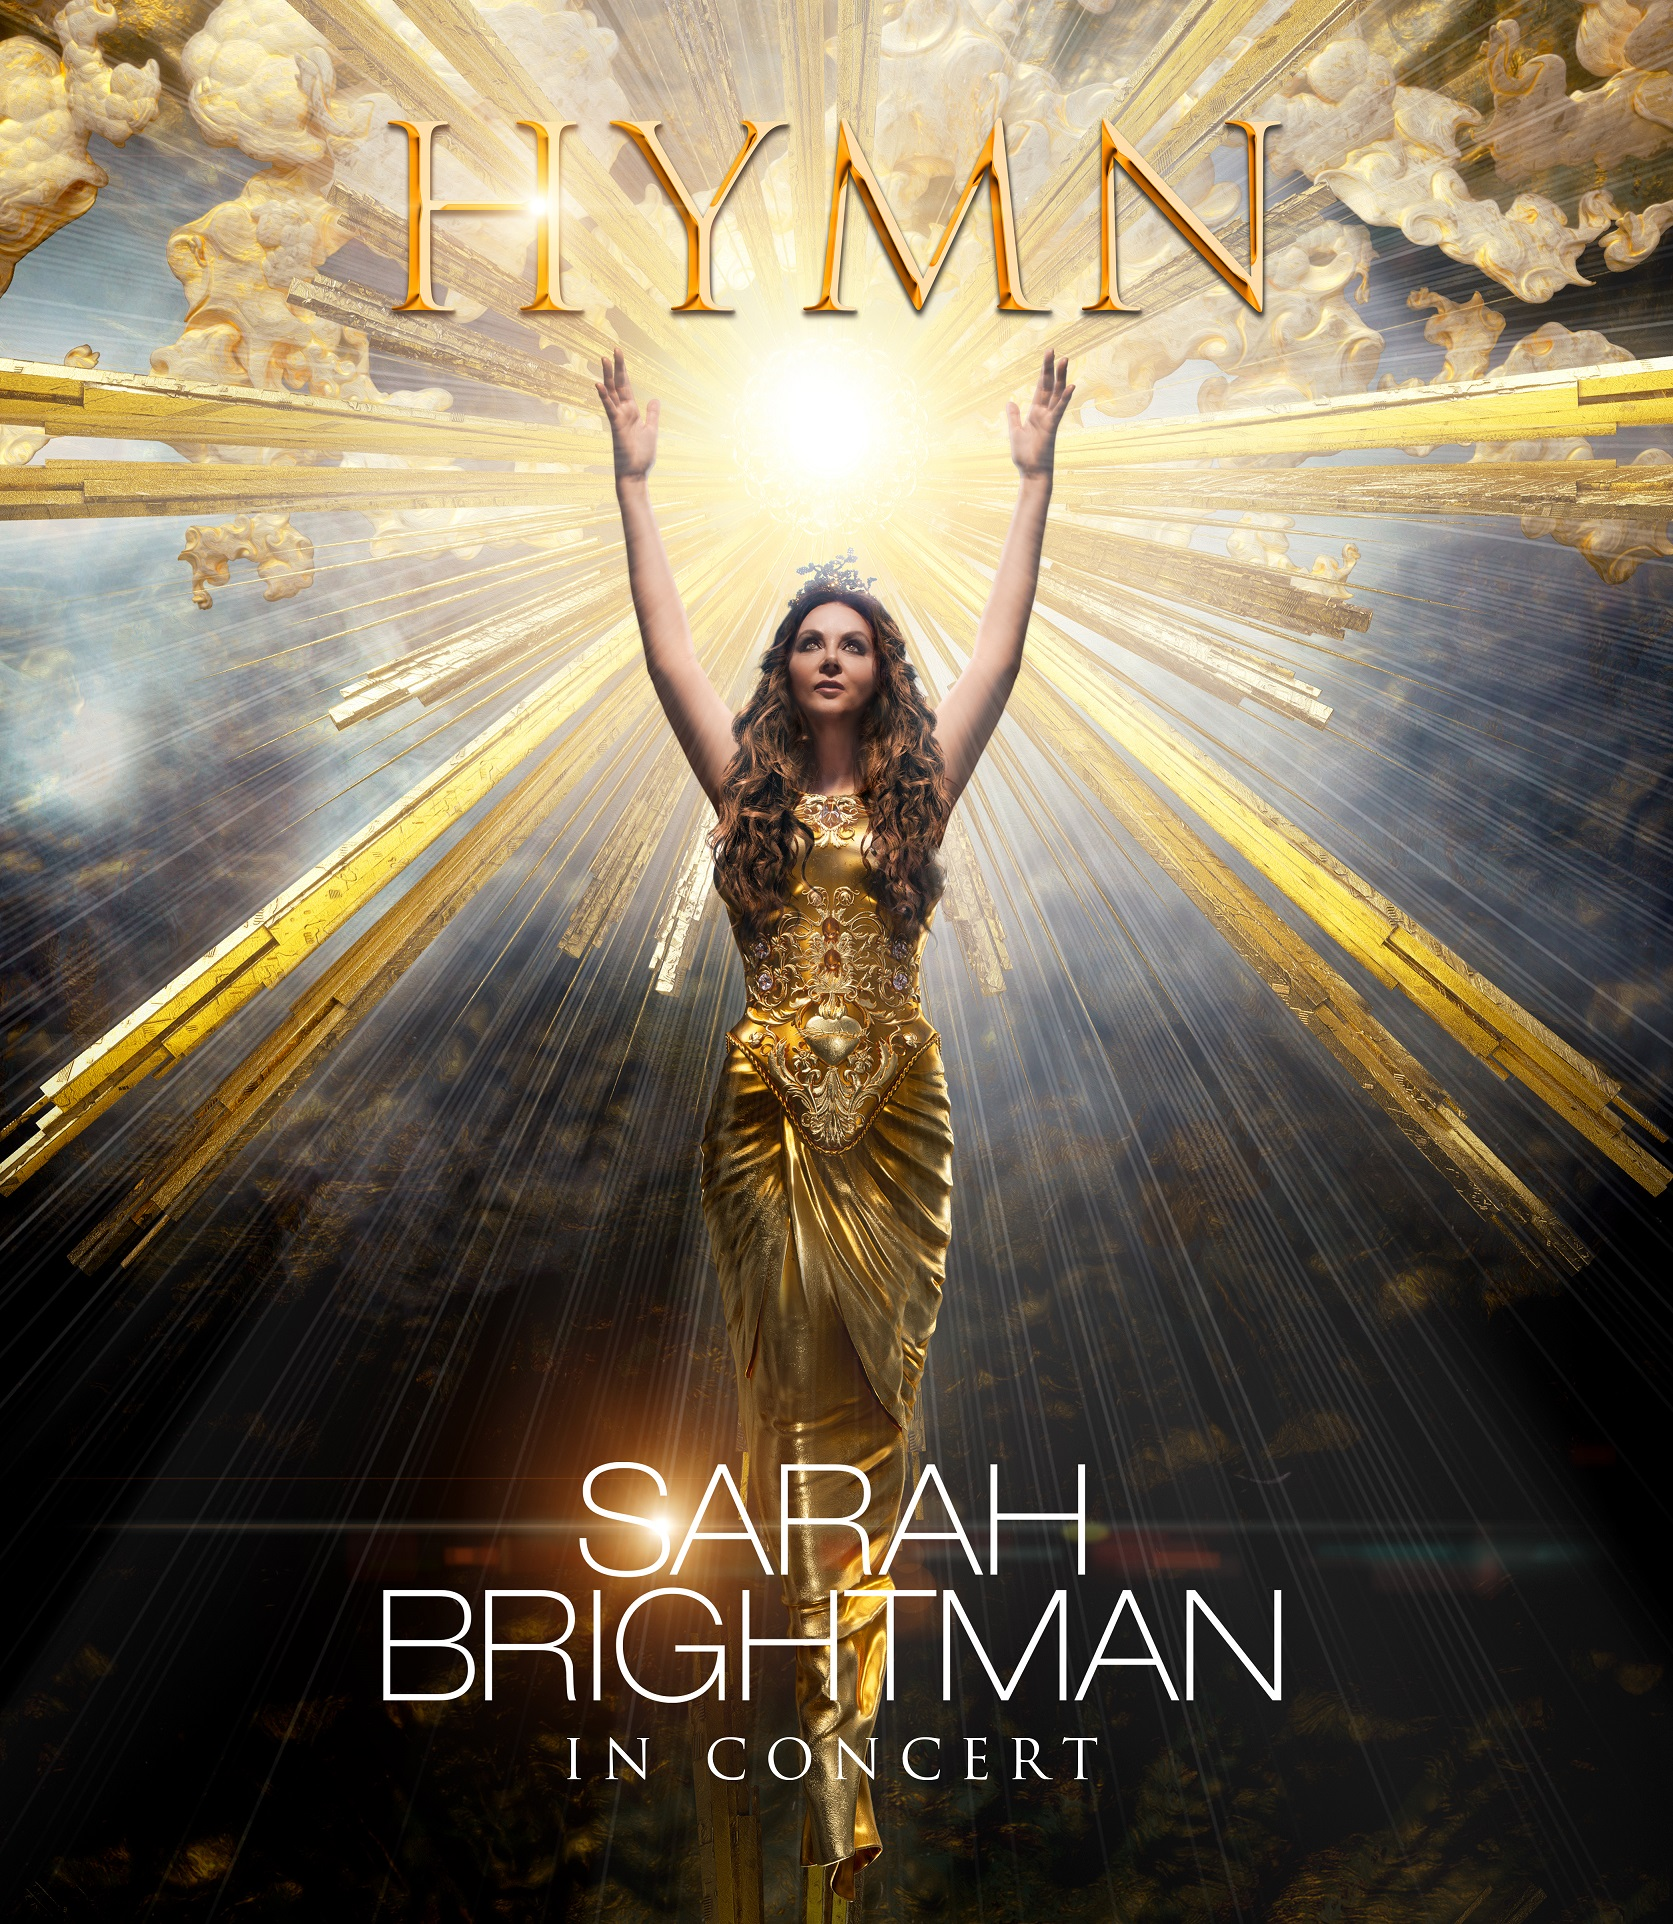 S_SarahBrightmanInConcert-HYMN-BLURAYCover-Preview-for-EagleRock